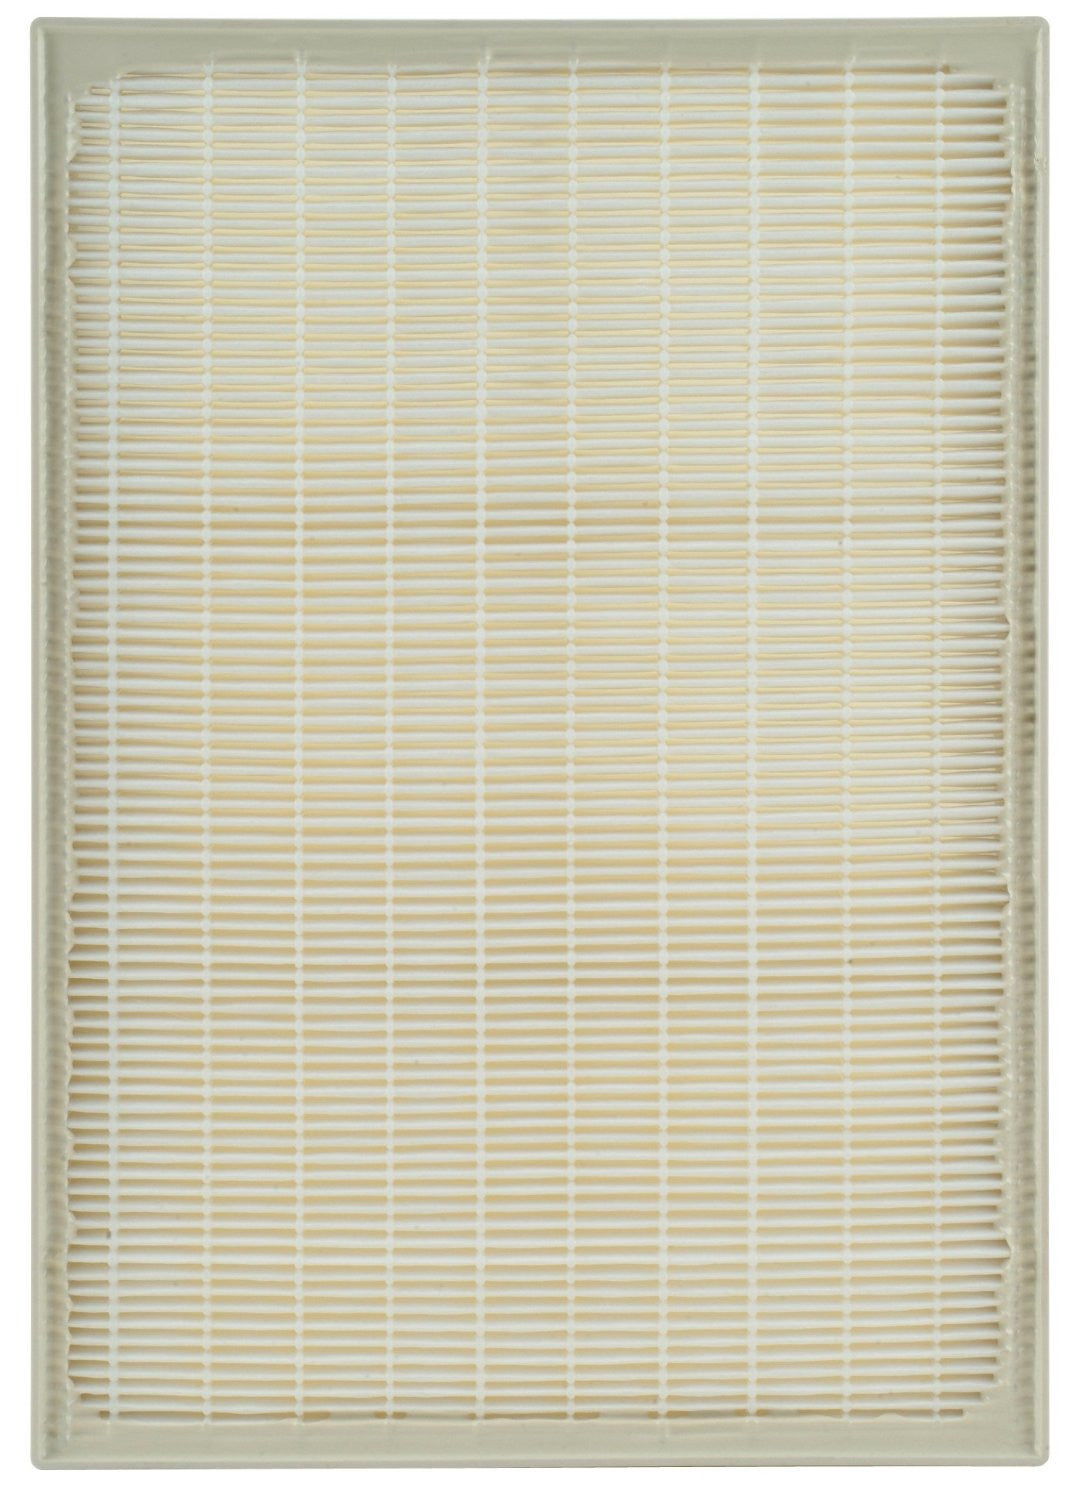 Whirlpool 1183051K Hepa Filter Replacement Free Shipping